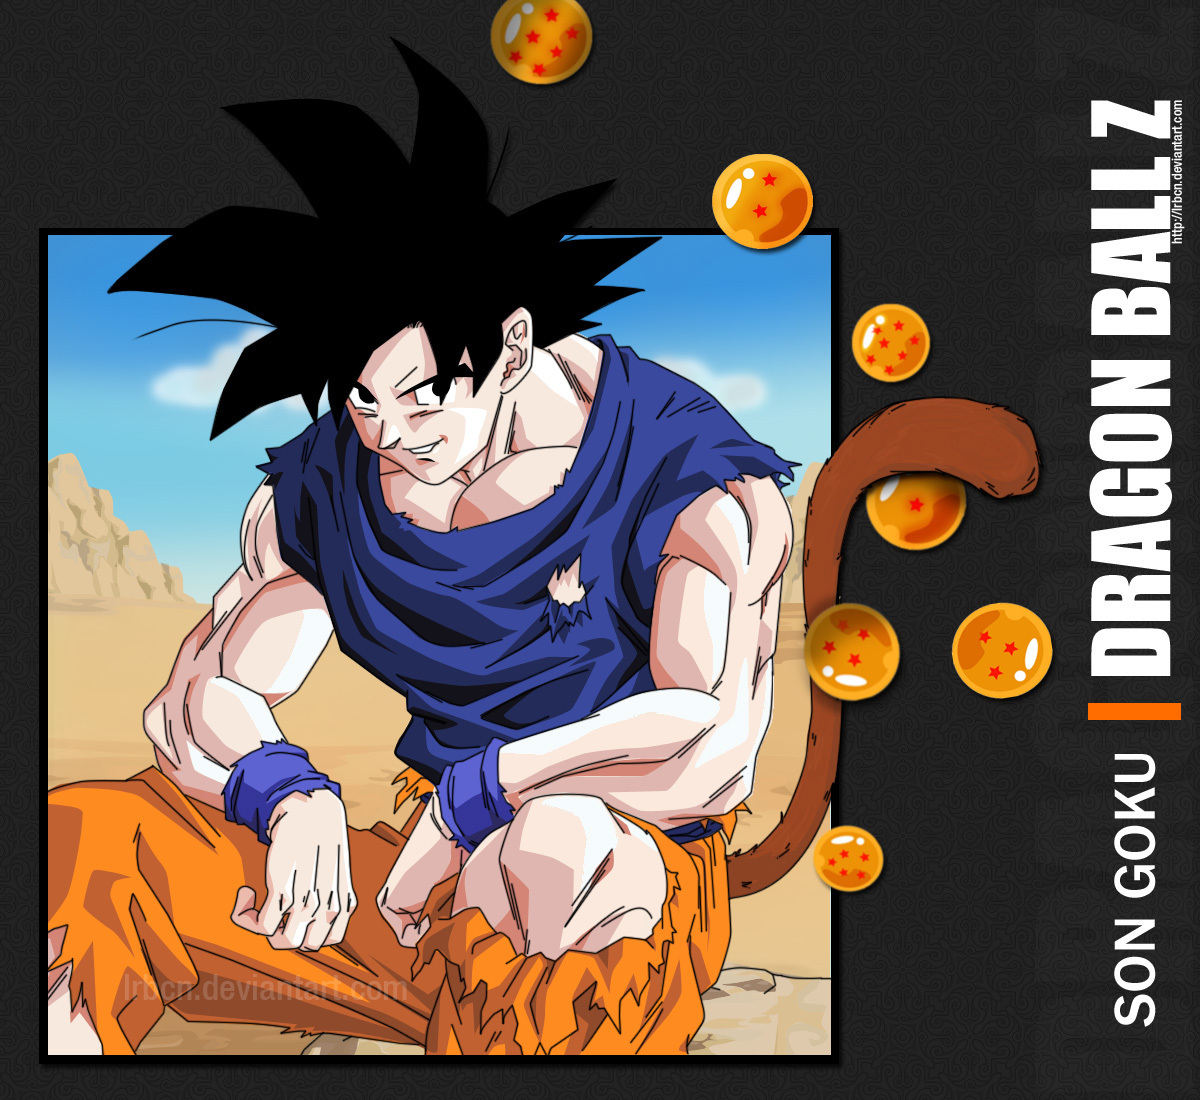 Son goku - Dragon Ball Z Fan Art (5548047) - Fanpop fanclubs